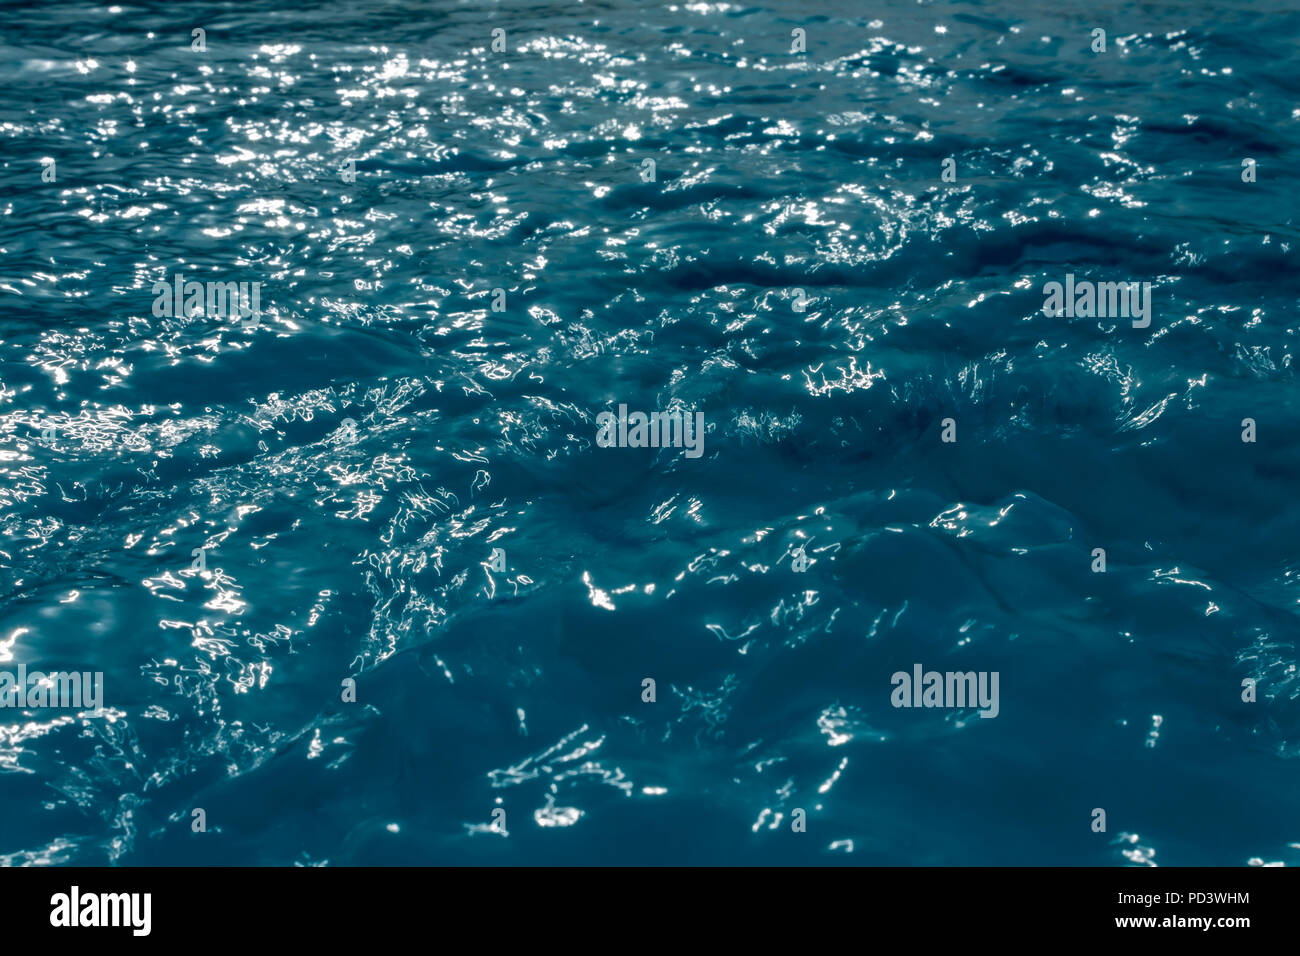 Water rippling with the sun's reflection shining on it, July 2018 - Stock Image